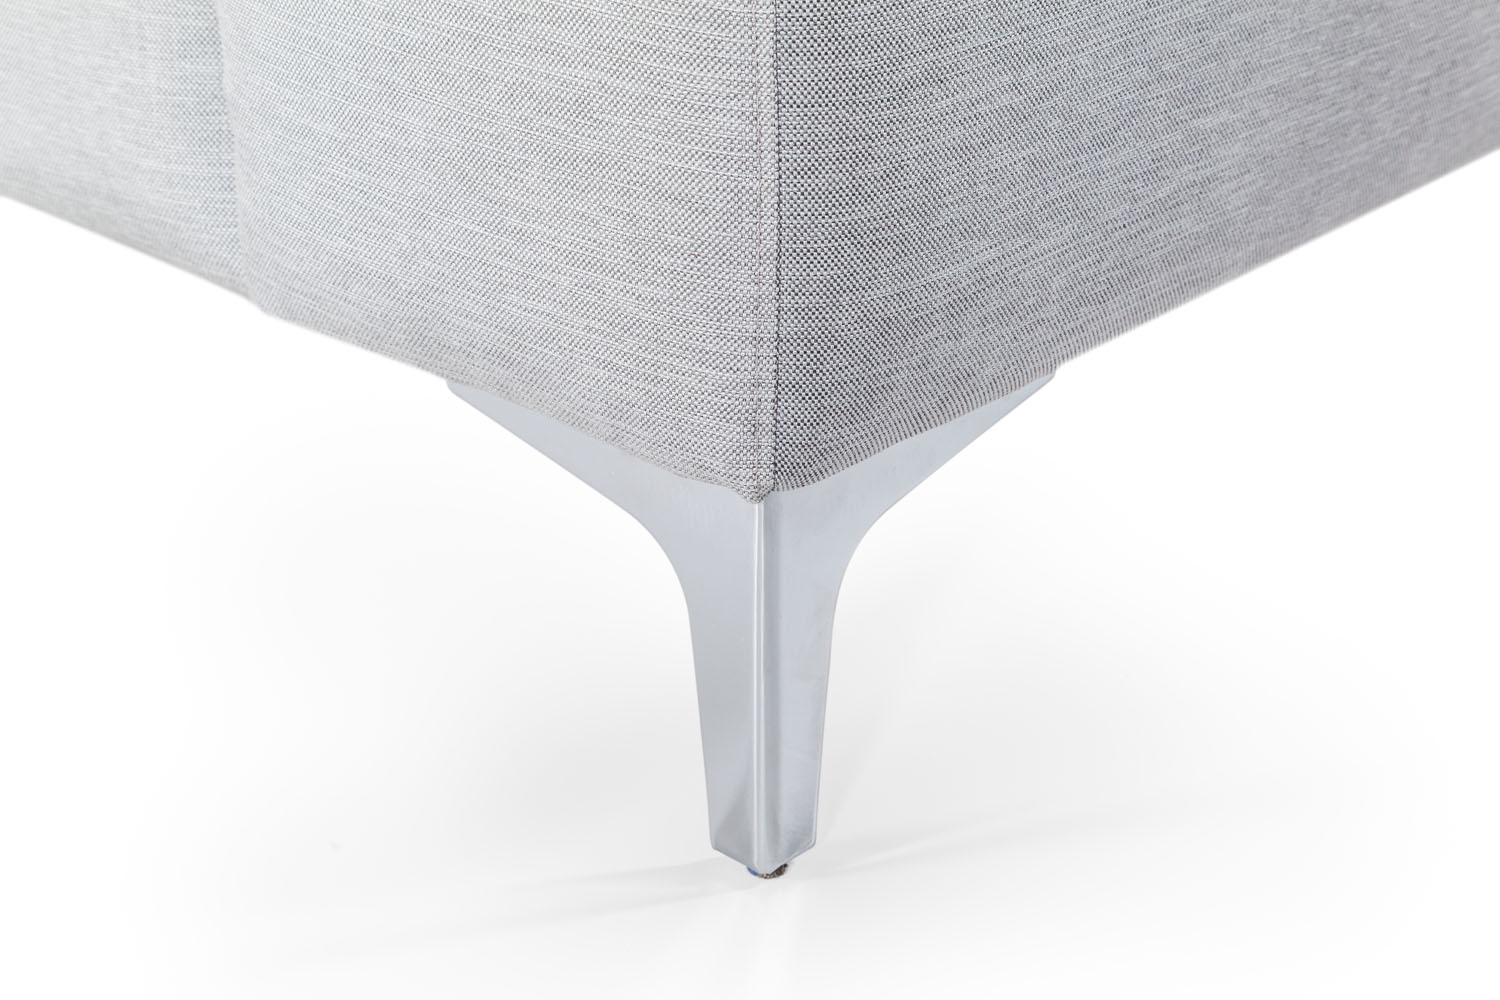 In picture: Nordic 4 DIV Left detail. Leg: 53, stainless steel.